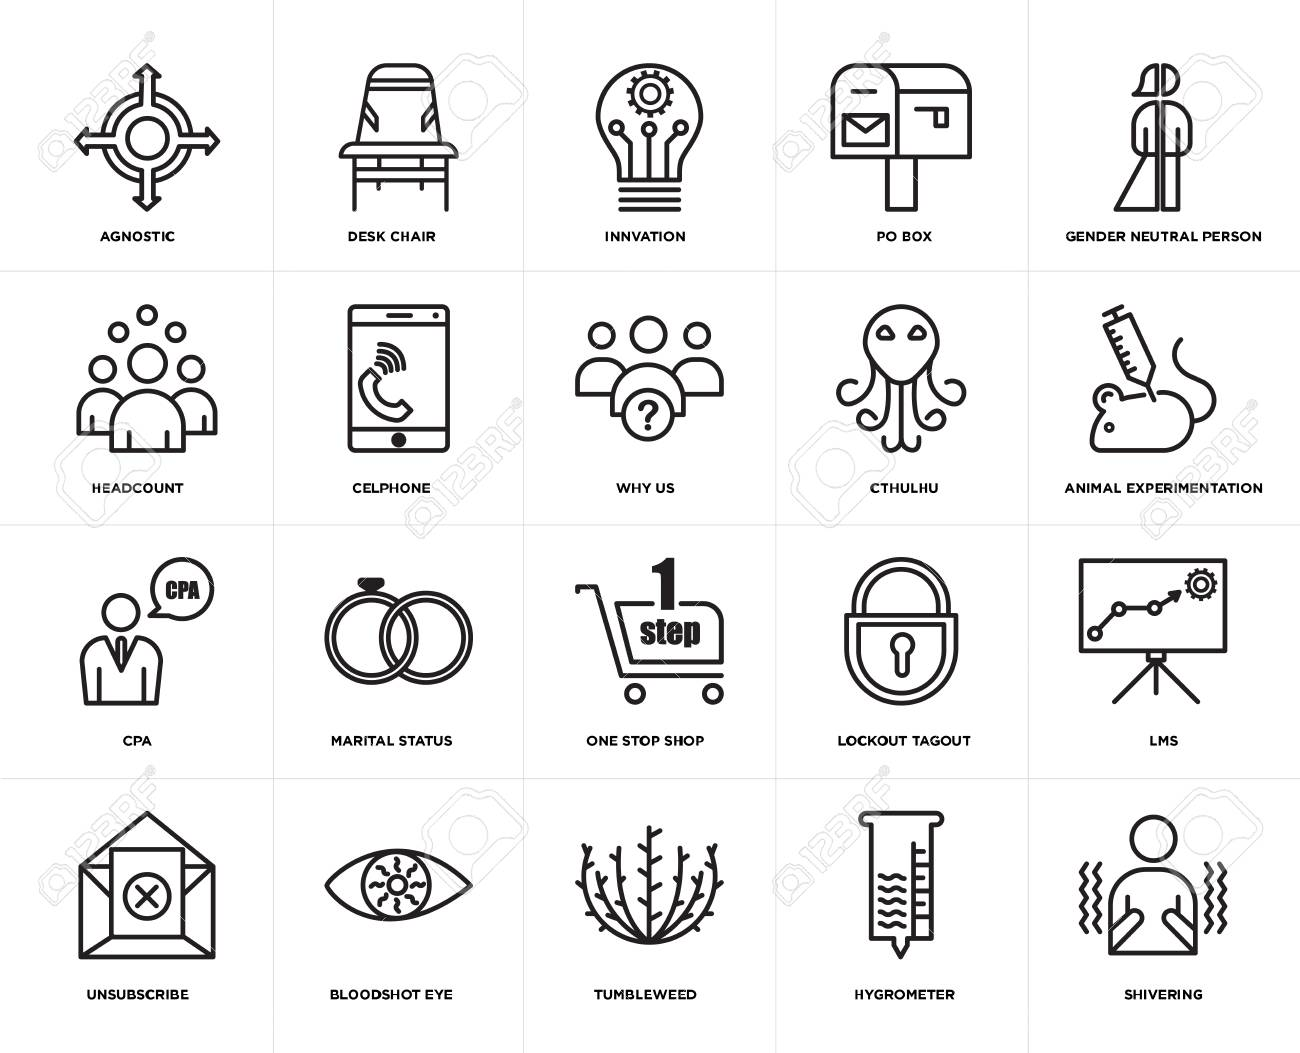 set of 20 simple editable icons such as shivering animal experimentation royalty free cliparts vectors and stock illustration image 106808035 set of 20 simple editable icons such as shivering animal experimentation